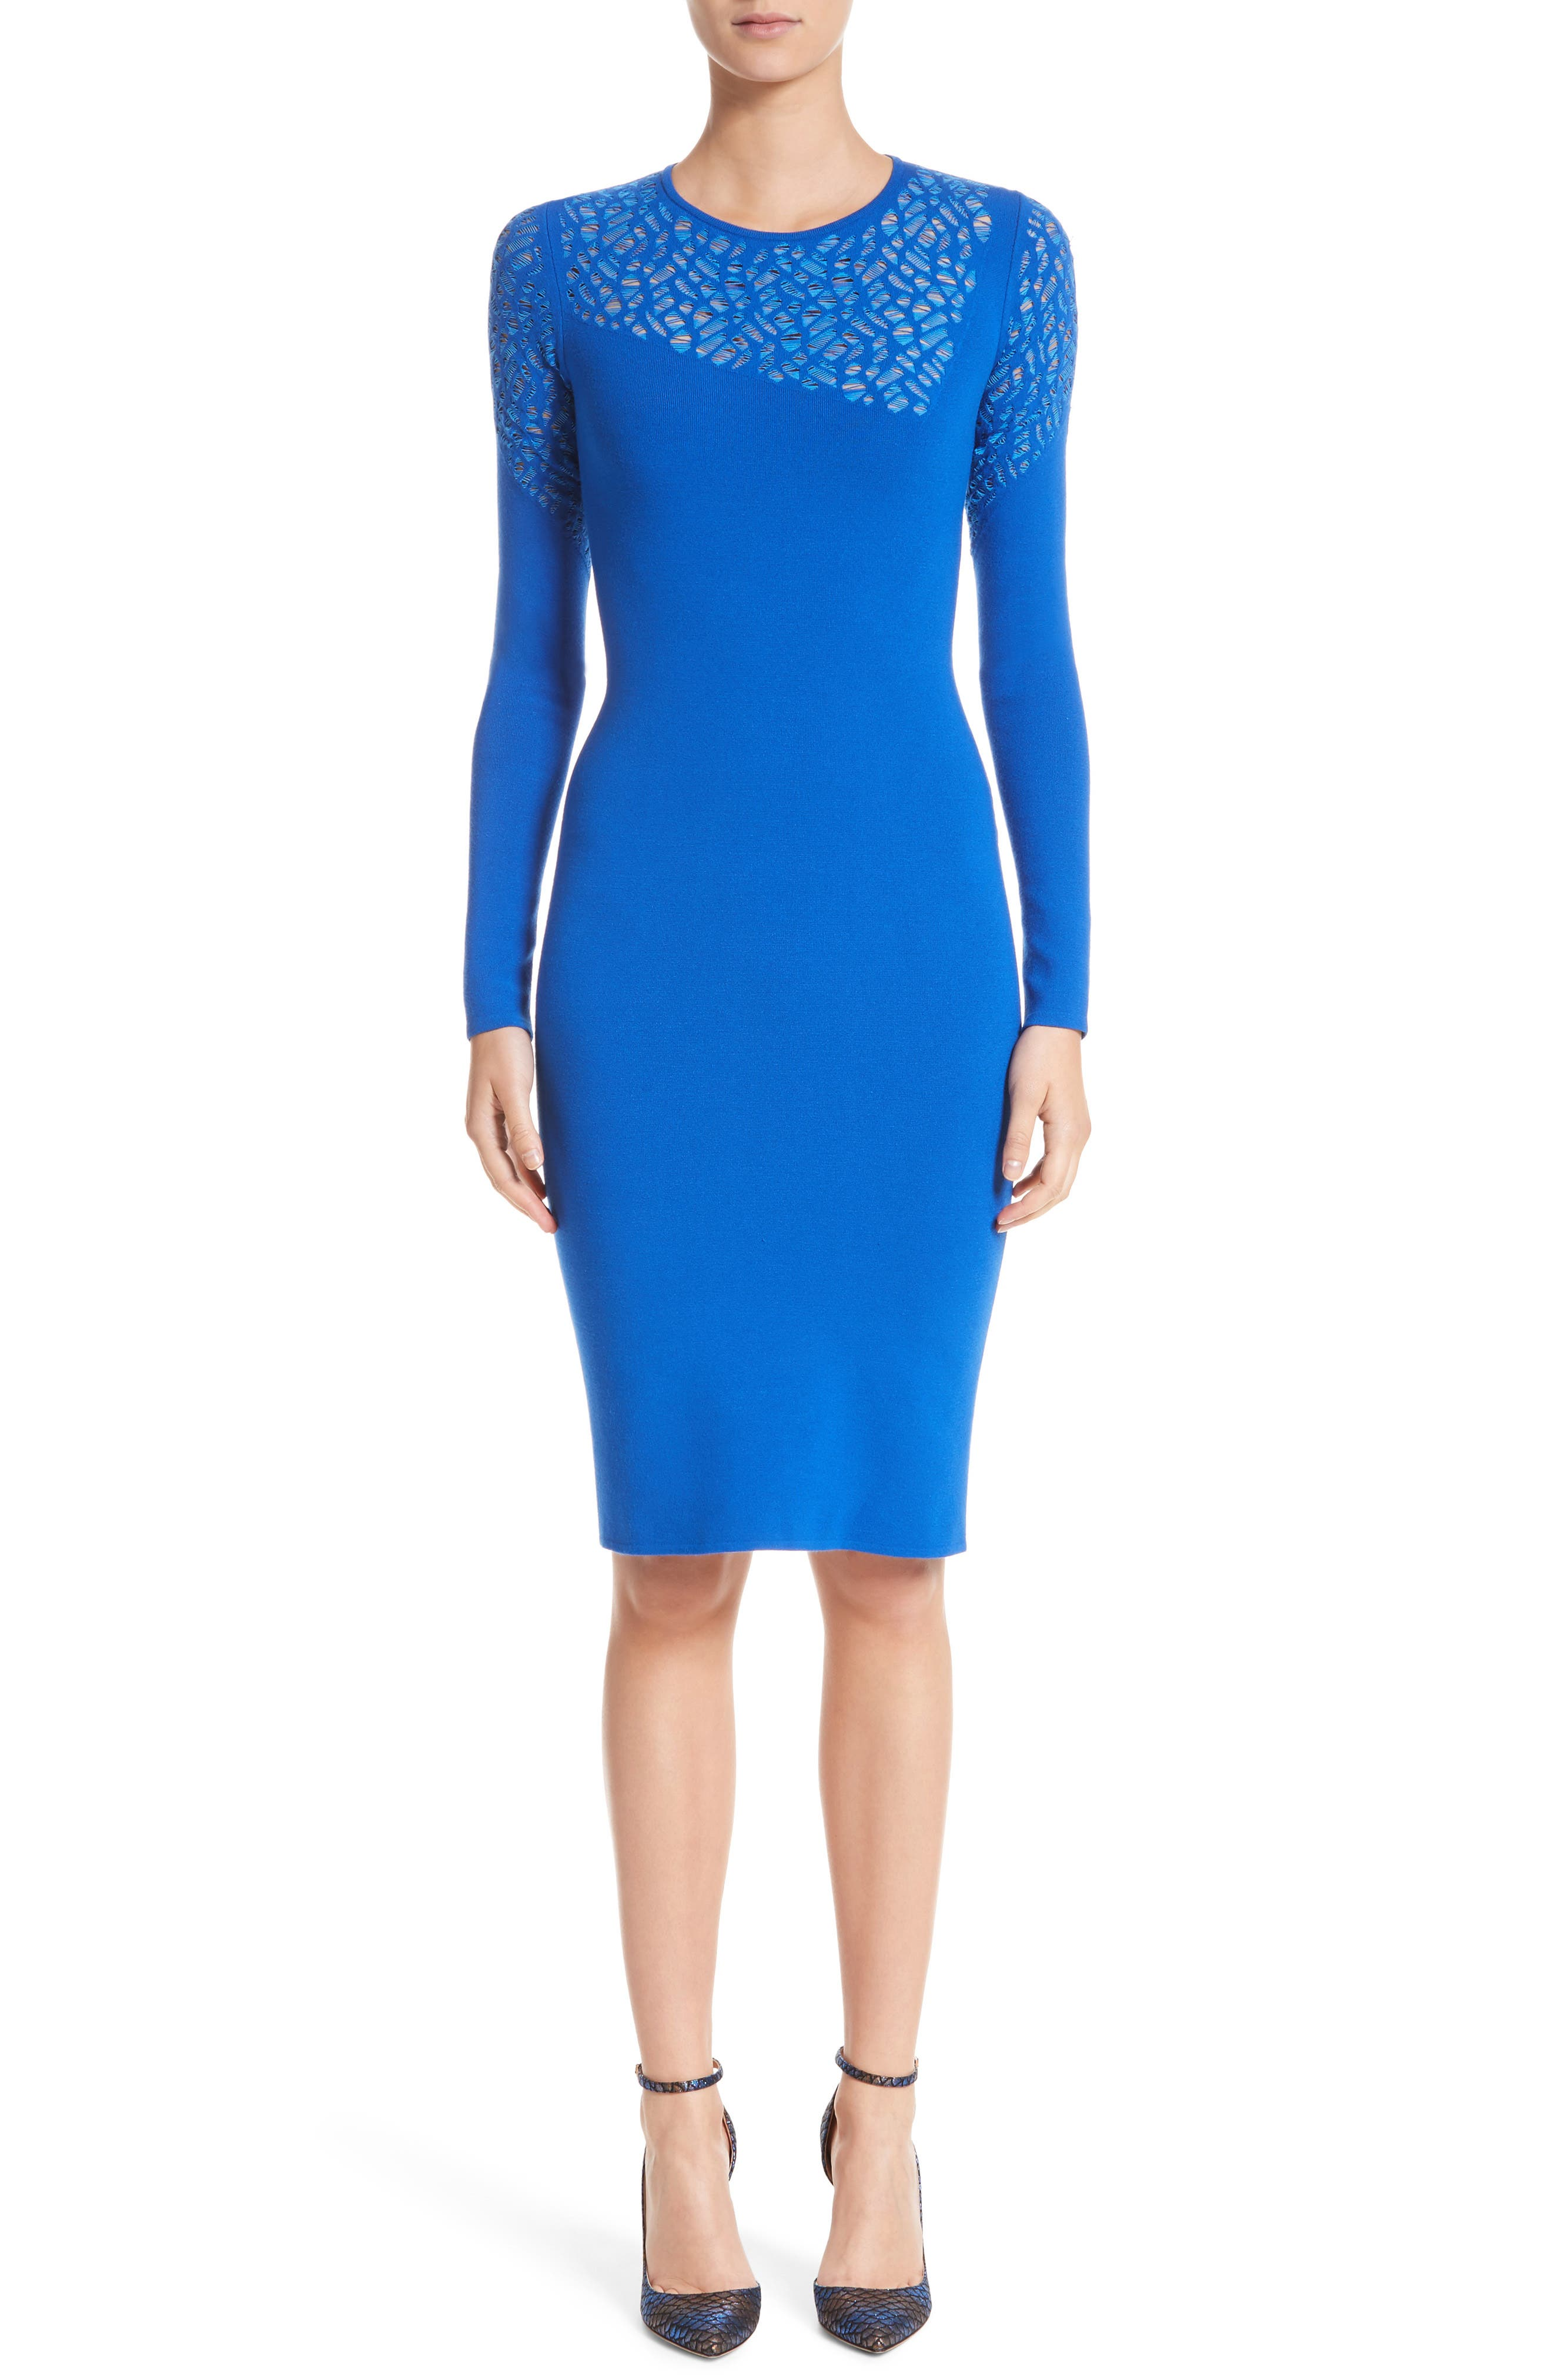 Alternate Image 1 Selected - Versace Collection Contrast Stitch Knit Dress